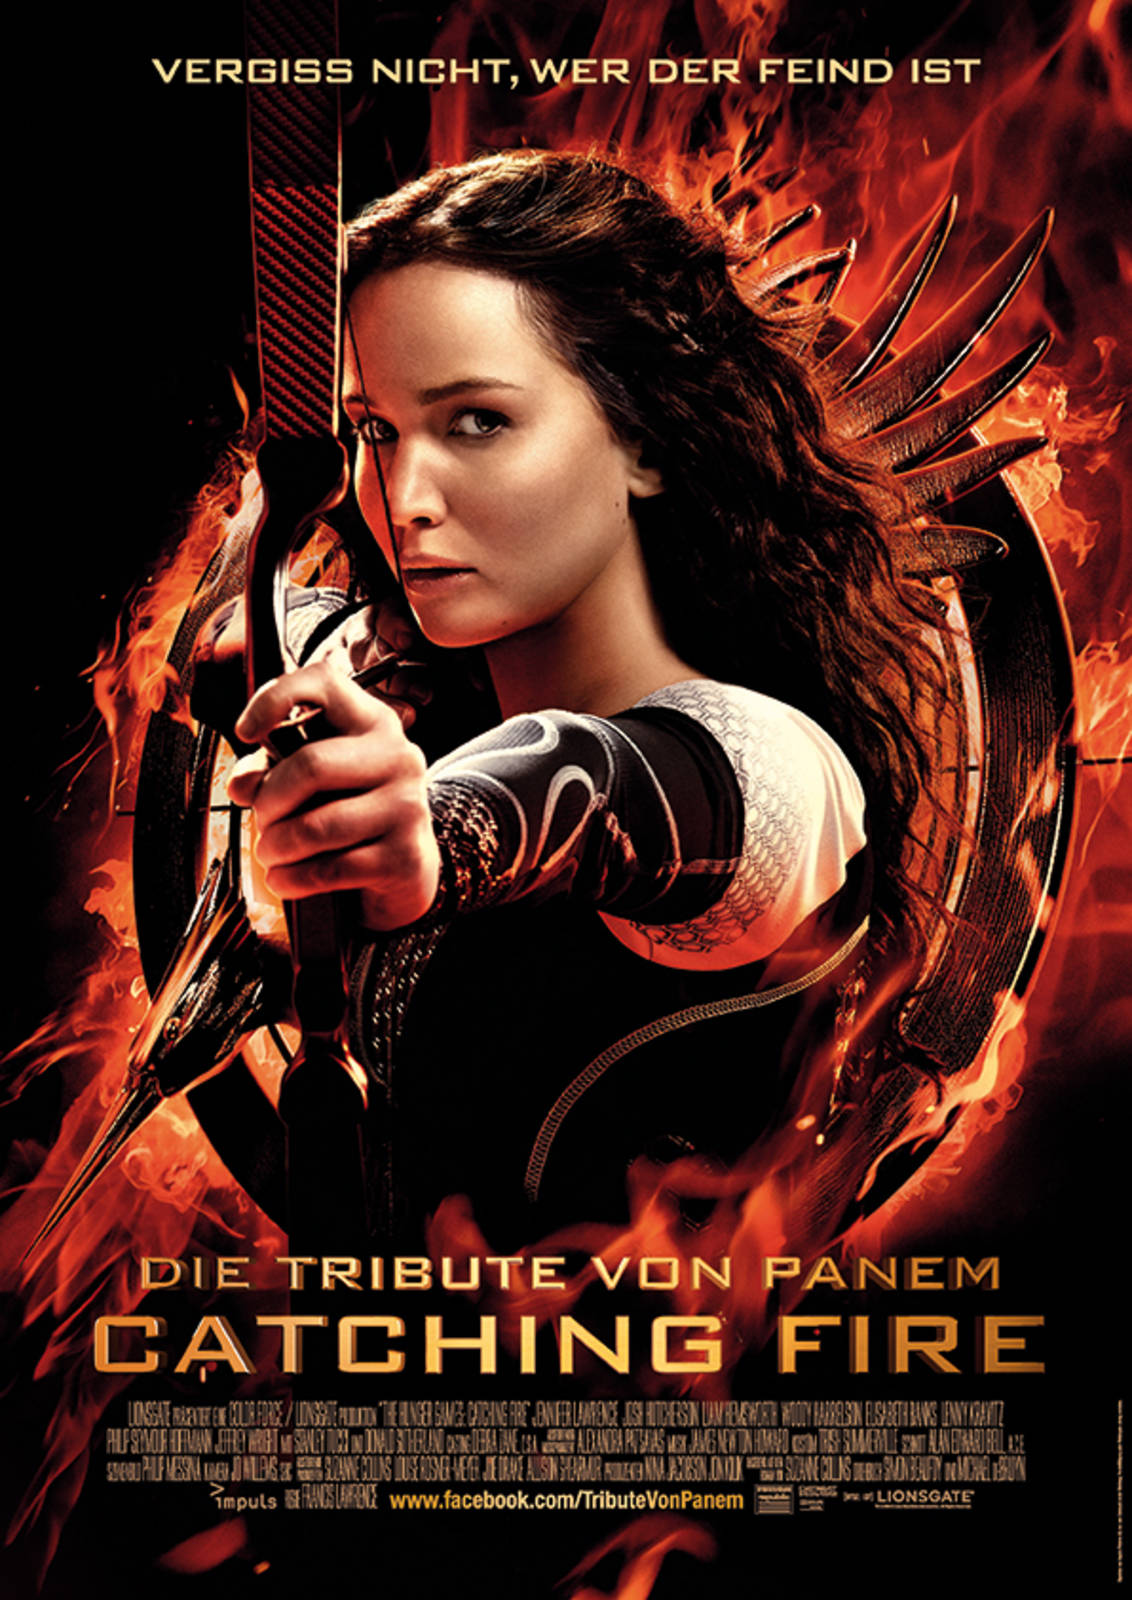 Die Tribute Von Panem Catching Fire Kinox.To